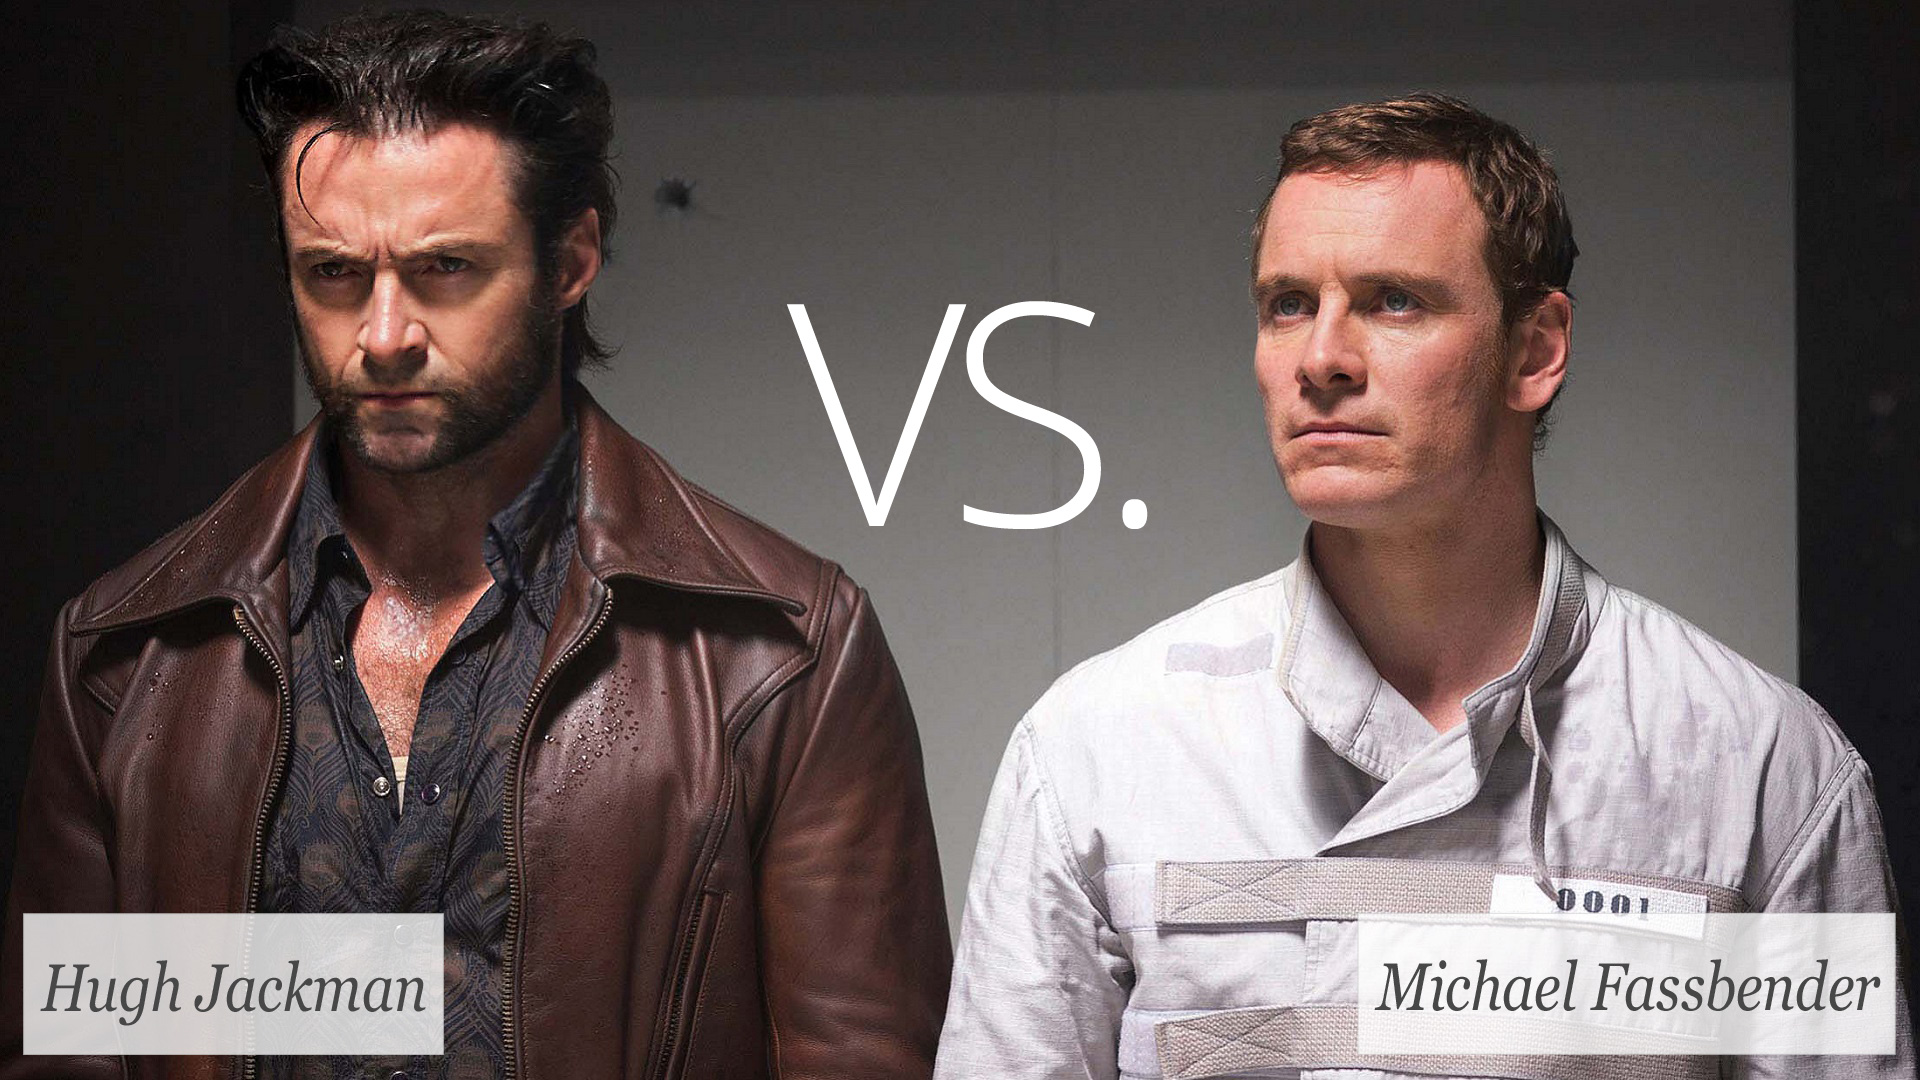 Hugh Jackman and Michael Fassbender in X-Men